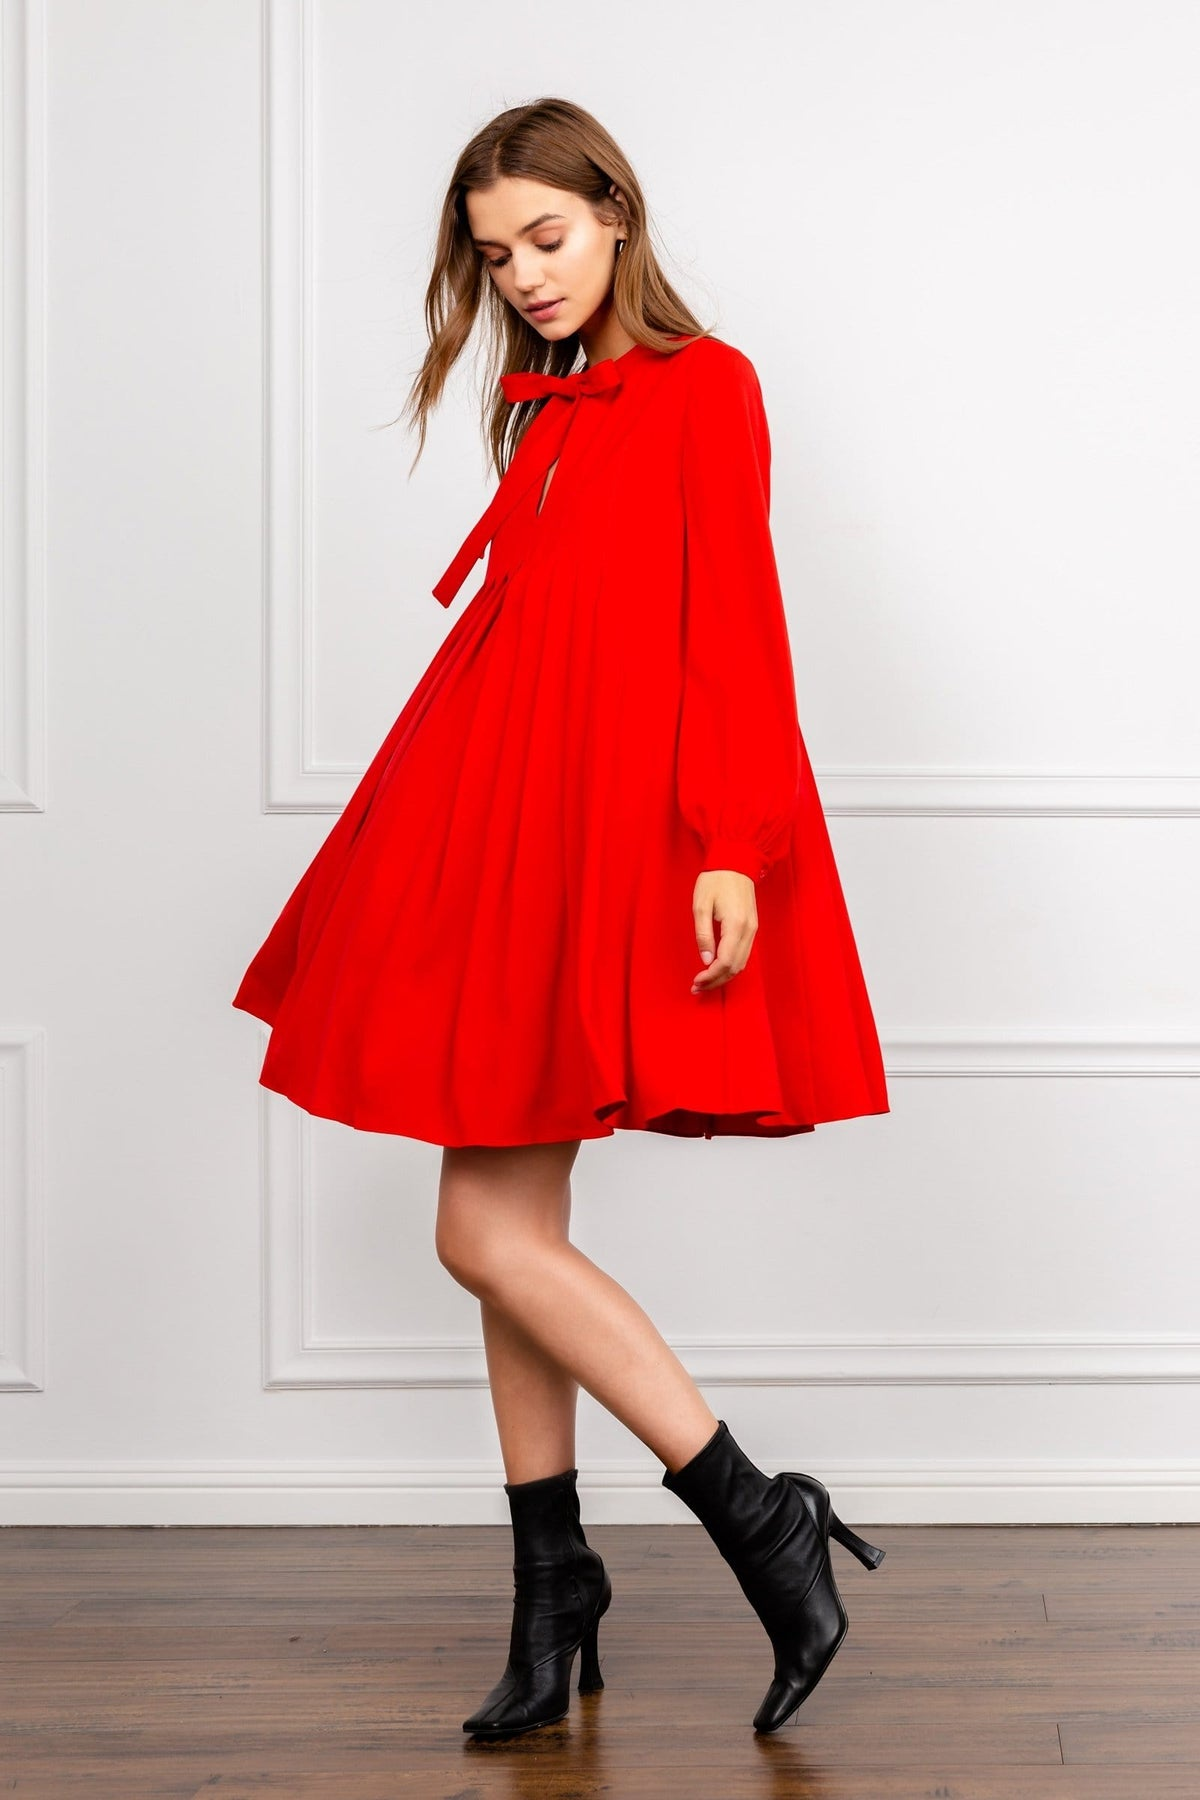 Scarlet Red Tent Dress